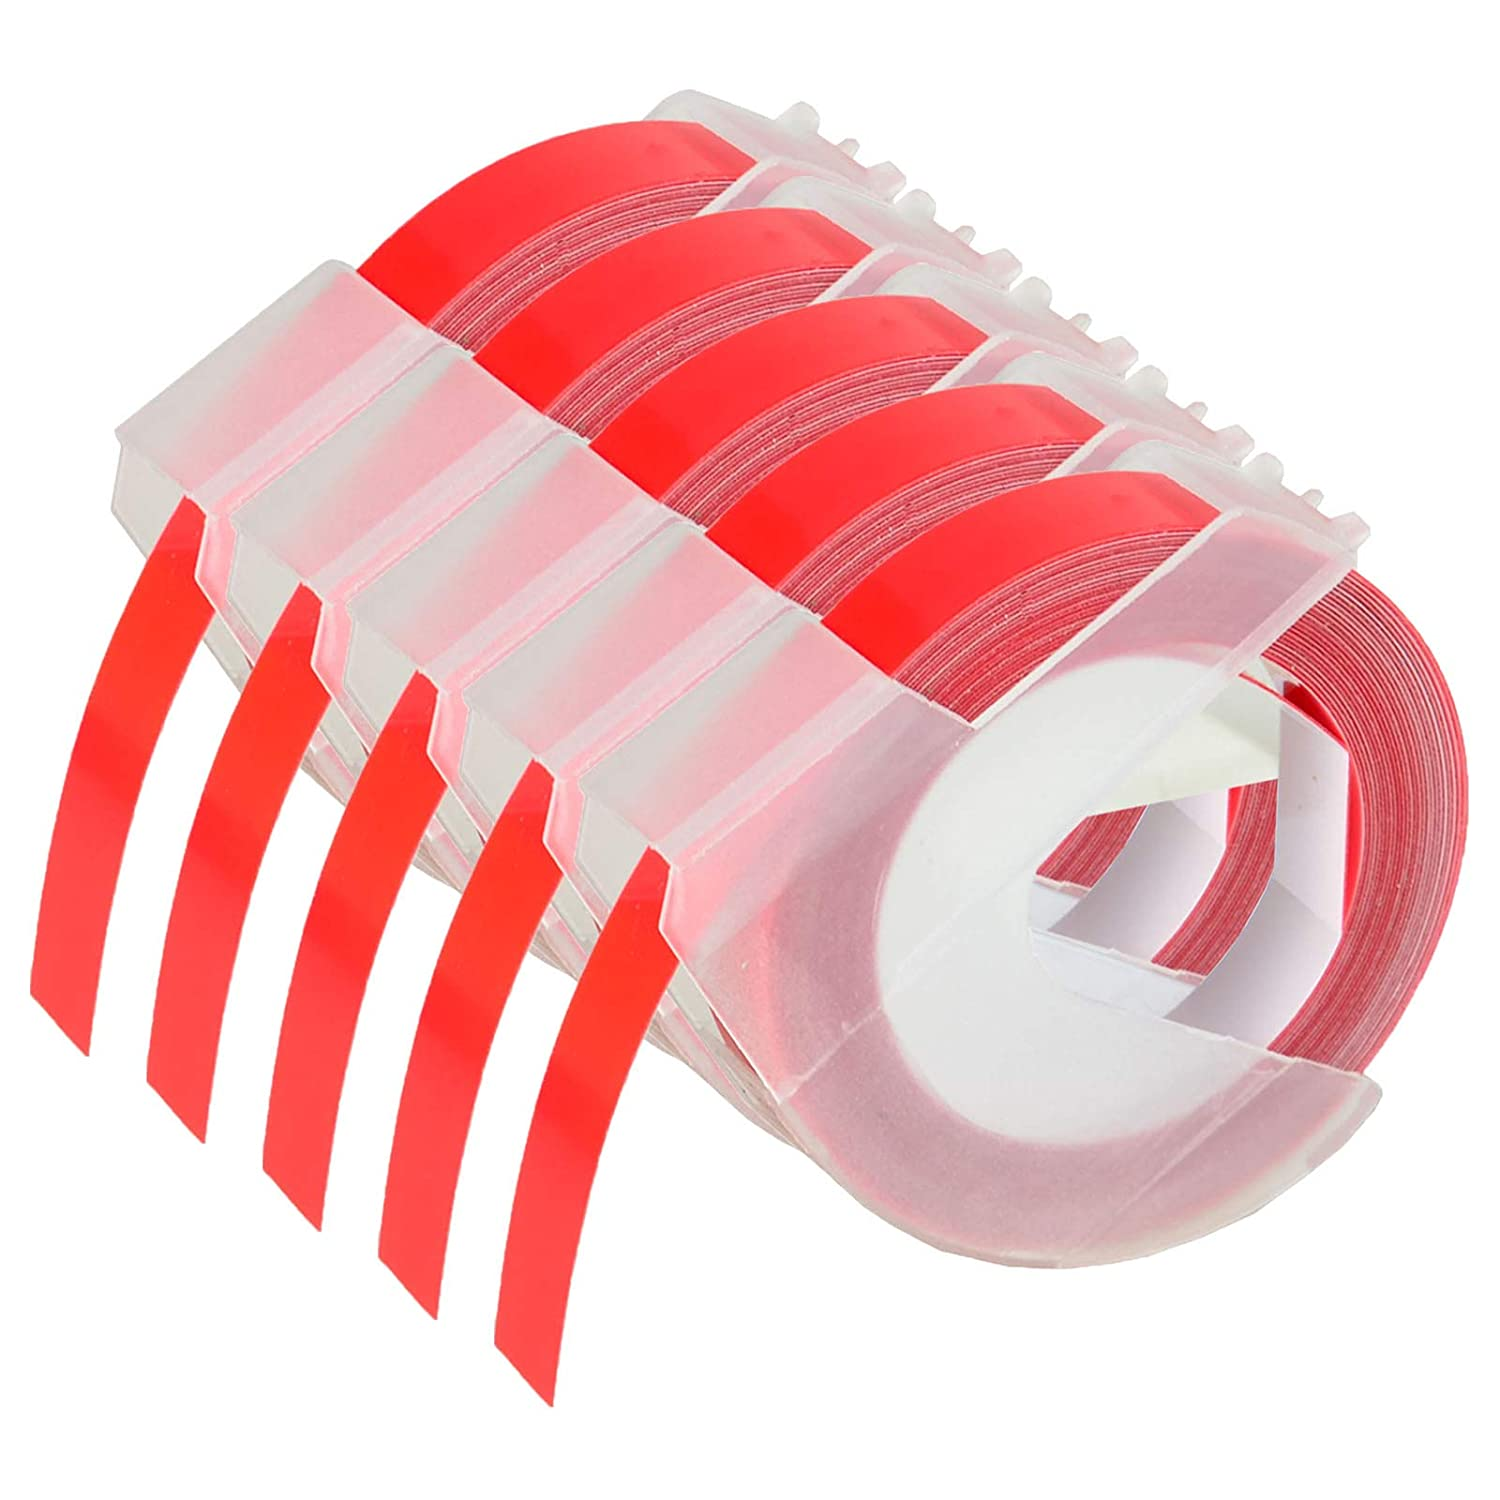 KCYMTONER 5 roll Pack Replace DYMO 3D Plastic Embossing Labels Tape for Embossing White on Red 3/8'' x 9.8' 9mm x 3m 520102 Compatible Dymo Executive III Embosser 1011 1550 1570 1610 Label Markers altom international Inc.